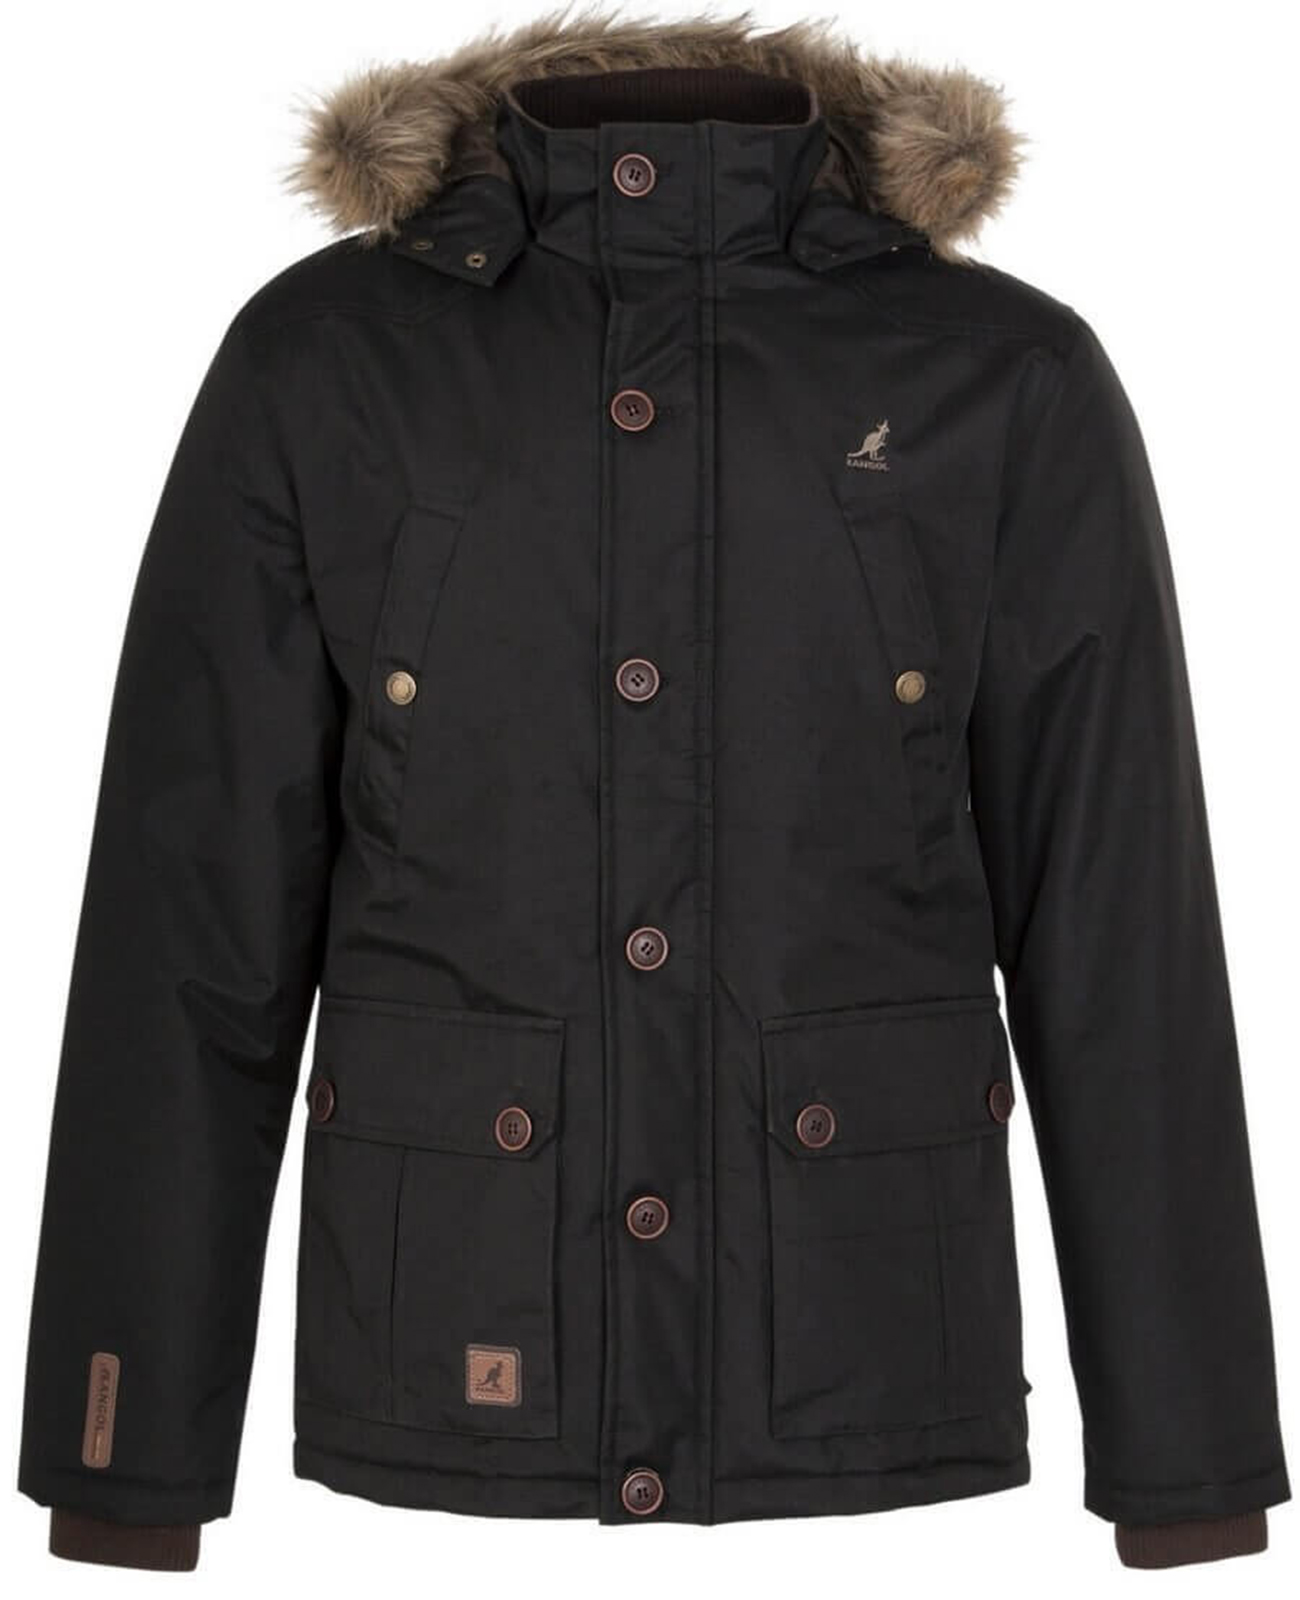 Winter Wonderland: 20 Best Winter Coats for Men. Posted in Style By Amanda Waas. Share. Tweet. But when it comes to winter coats, there are a dizzying number of options and styles to choose from. Canada Goose has been constructing high-quality cold weather gear since it was founded in a Toronto warehouse in , but the Macmillan Parka.